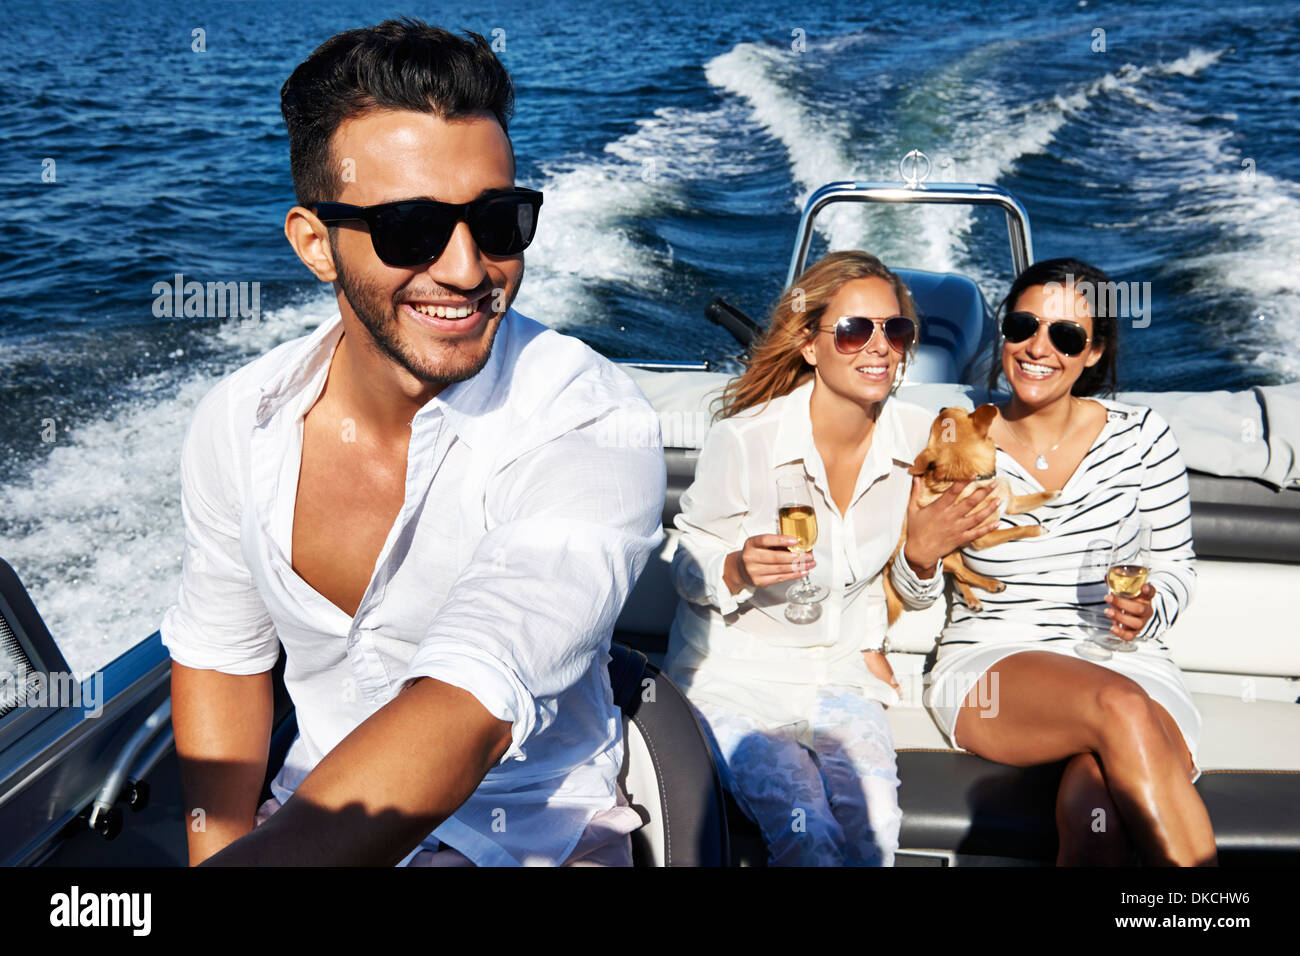 Young adults on boat, Gavle, Sweden - Stock Image